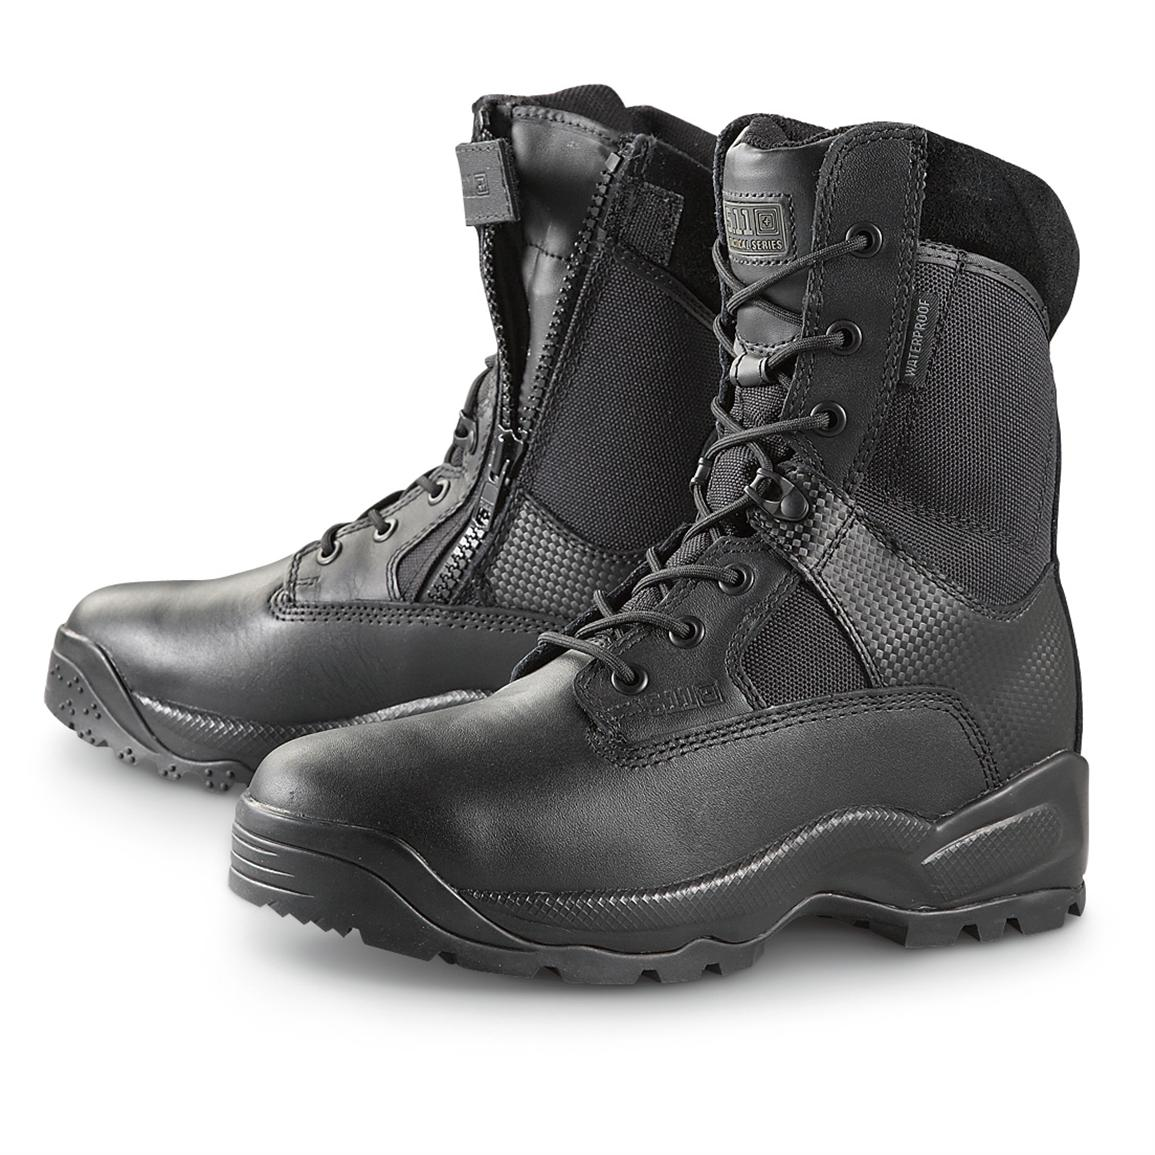 "Men's 5.11 Tactical® 8"" Waterproof Side-zip Storm Combat Boots, Black"